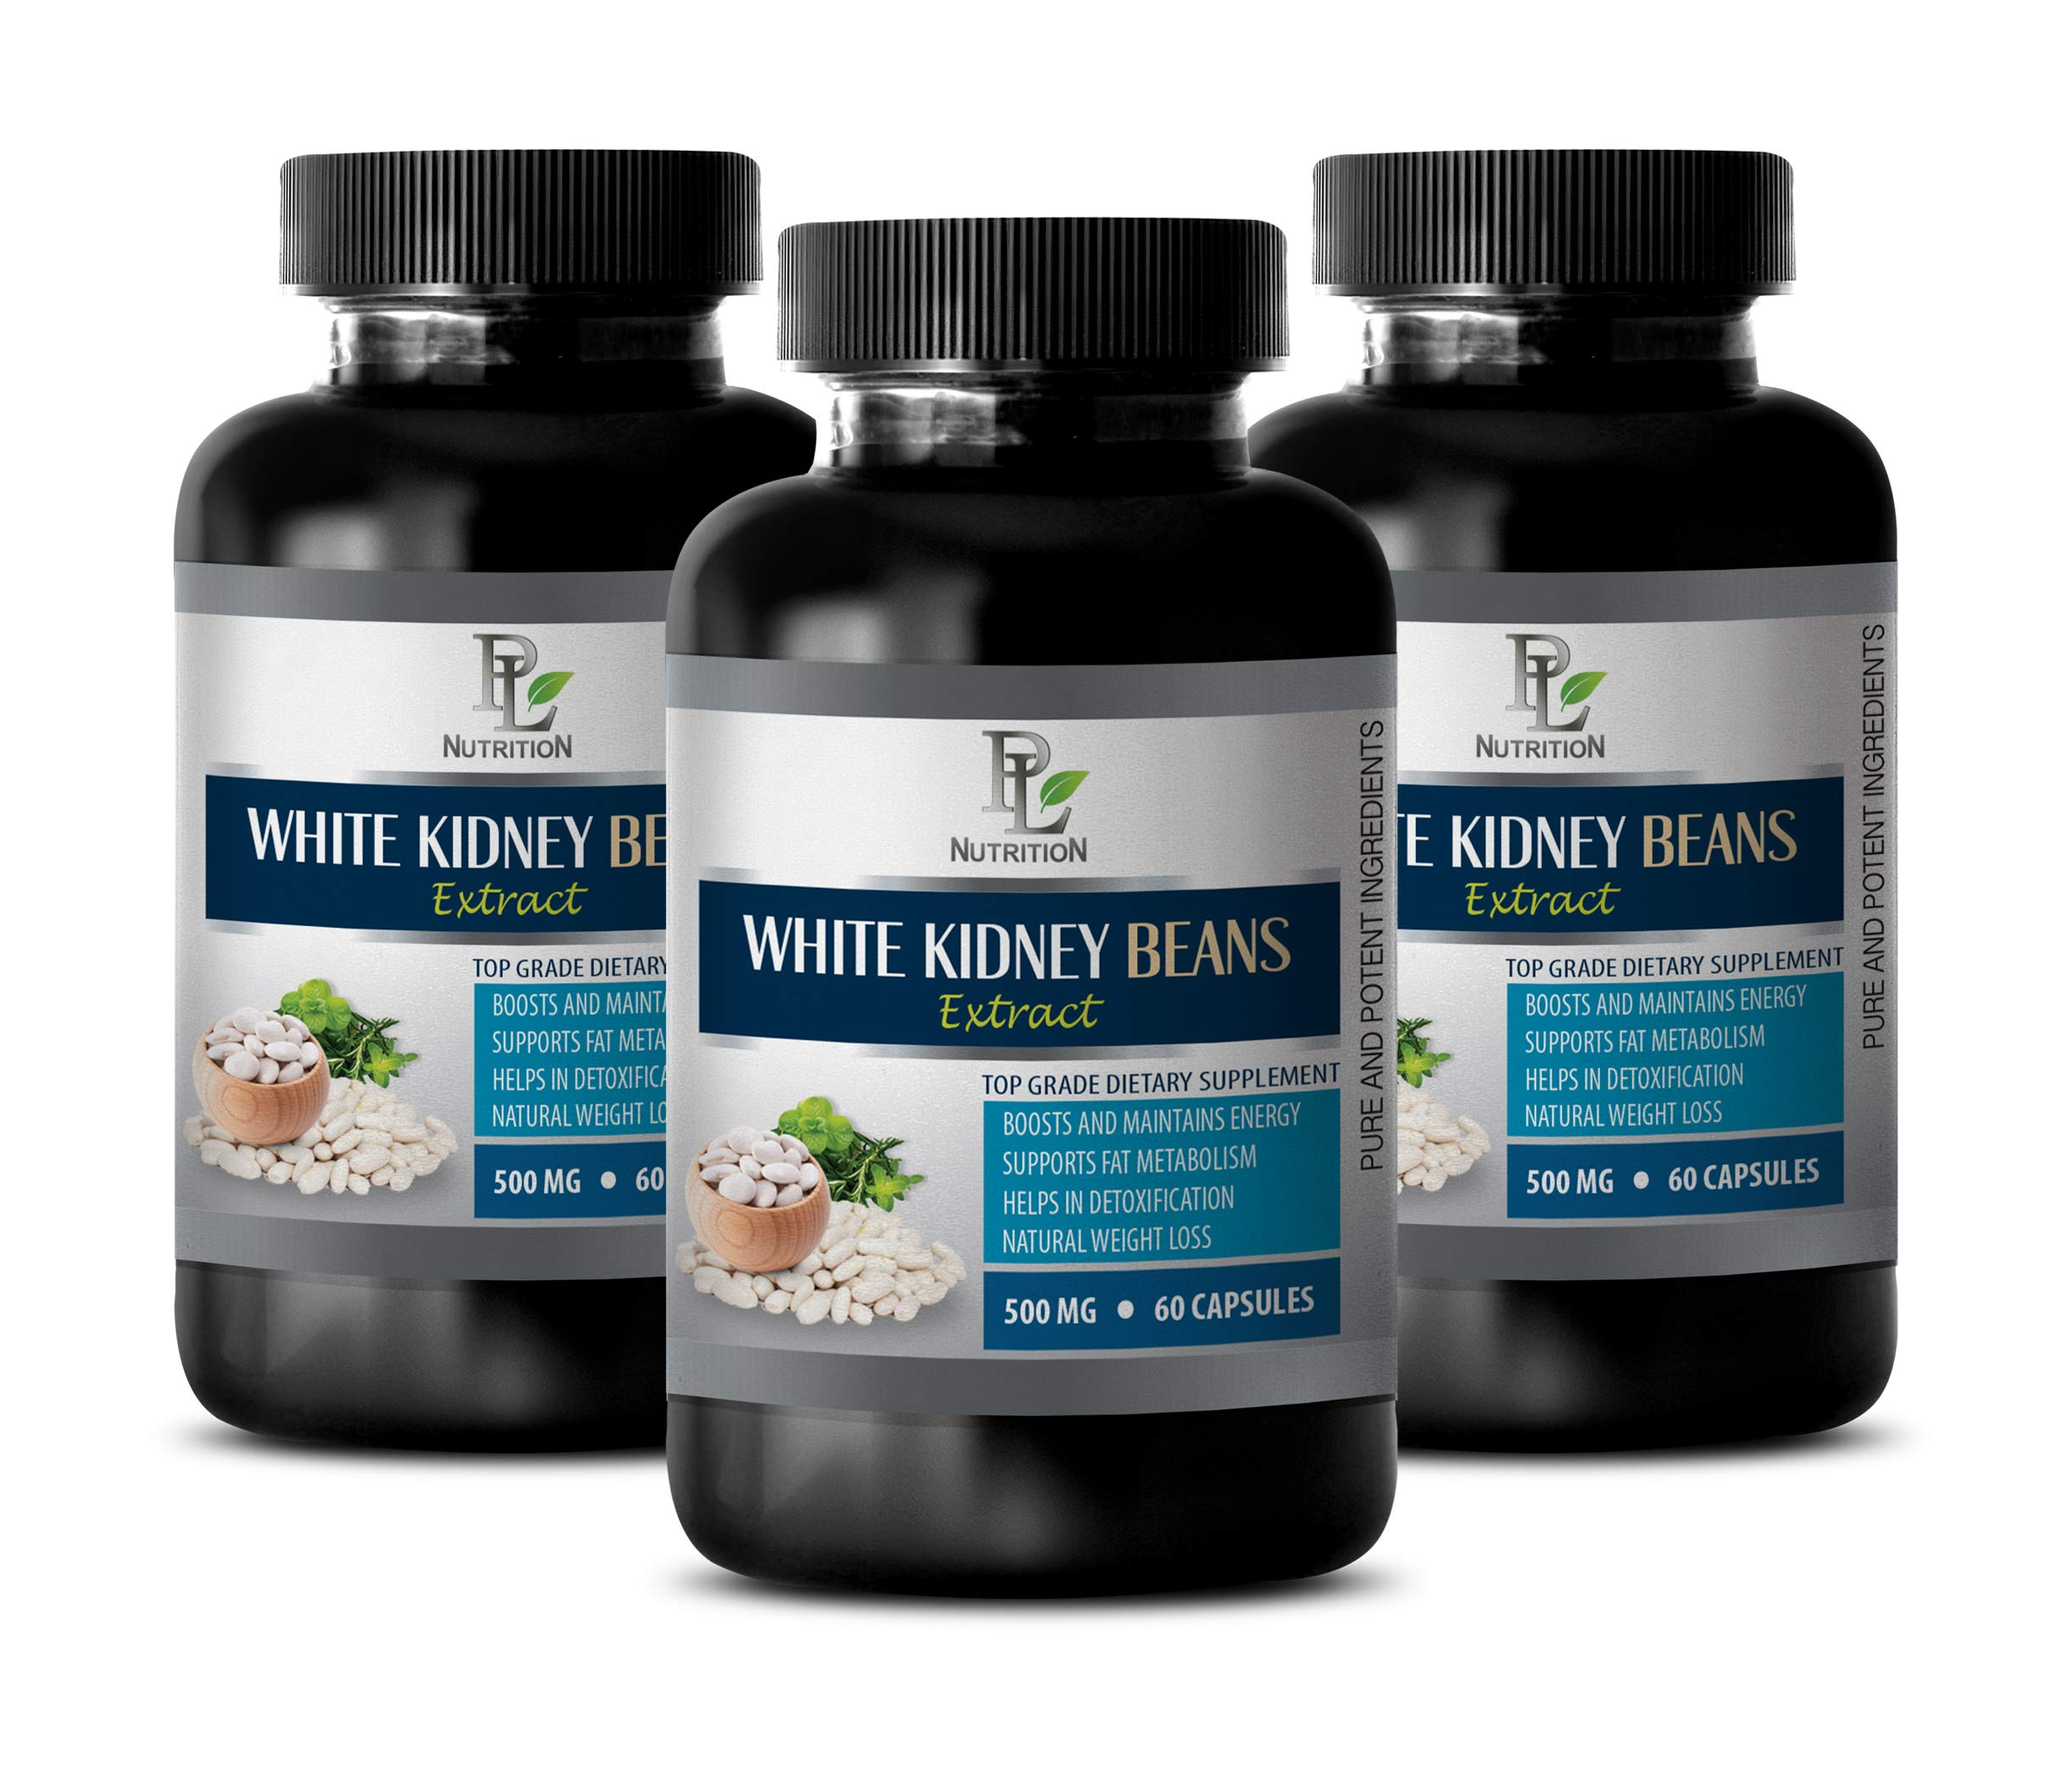 Appetite suppressant Men and Women - White Kidney Beans Extract 500MG - TOP Grade Dietary Supplement - Weight Loss Metabolism Booster for Women - 3 Bottles (180 Capsules)